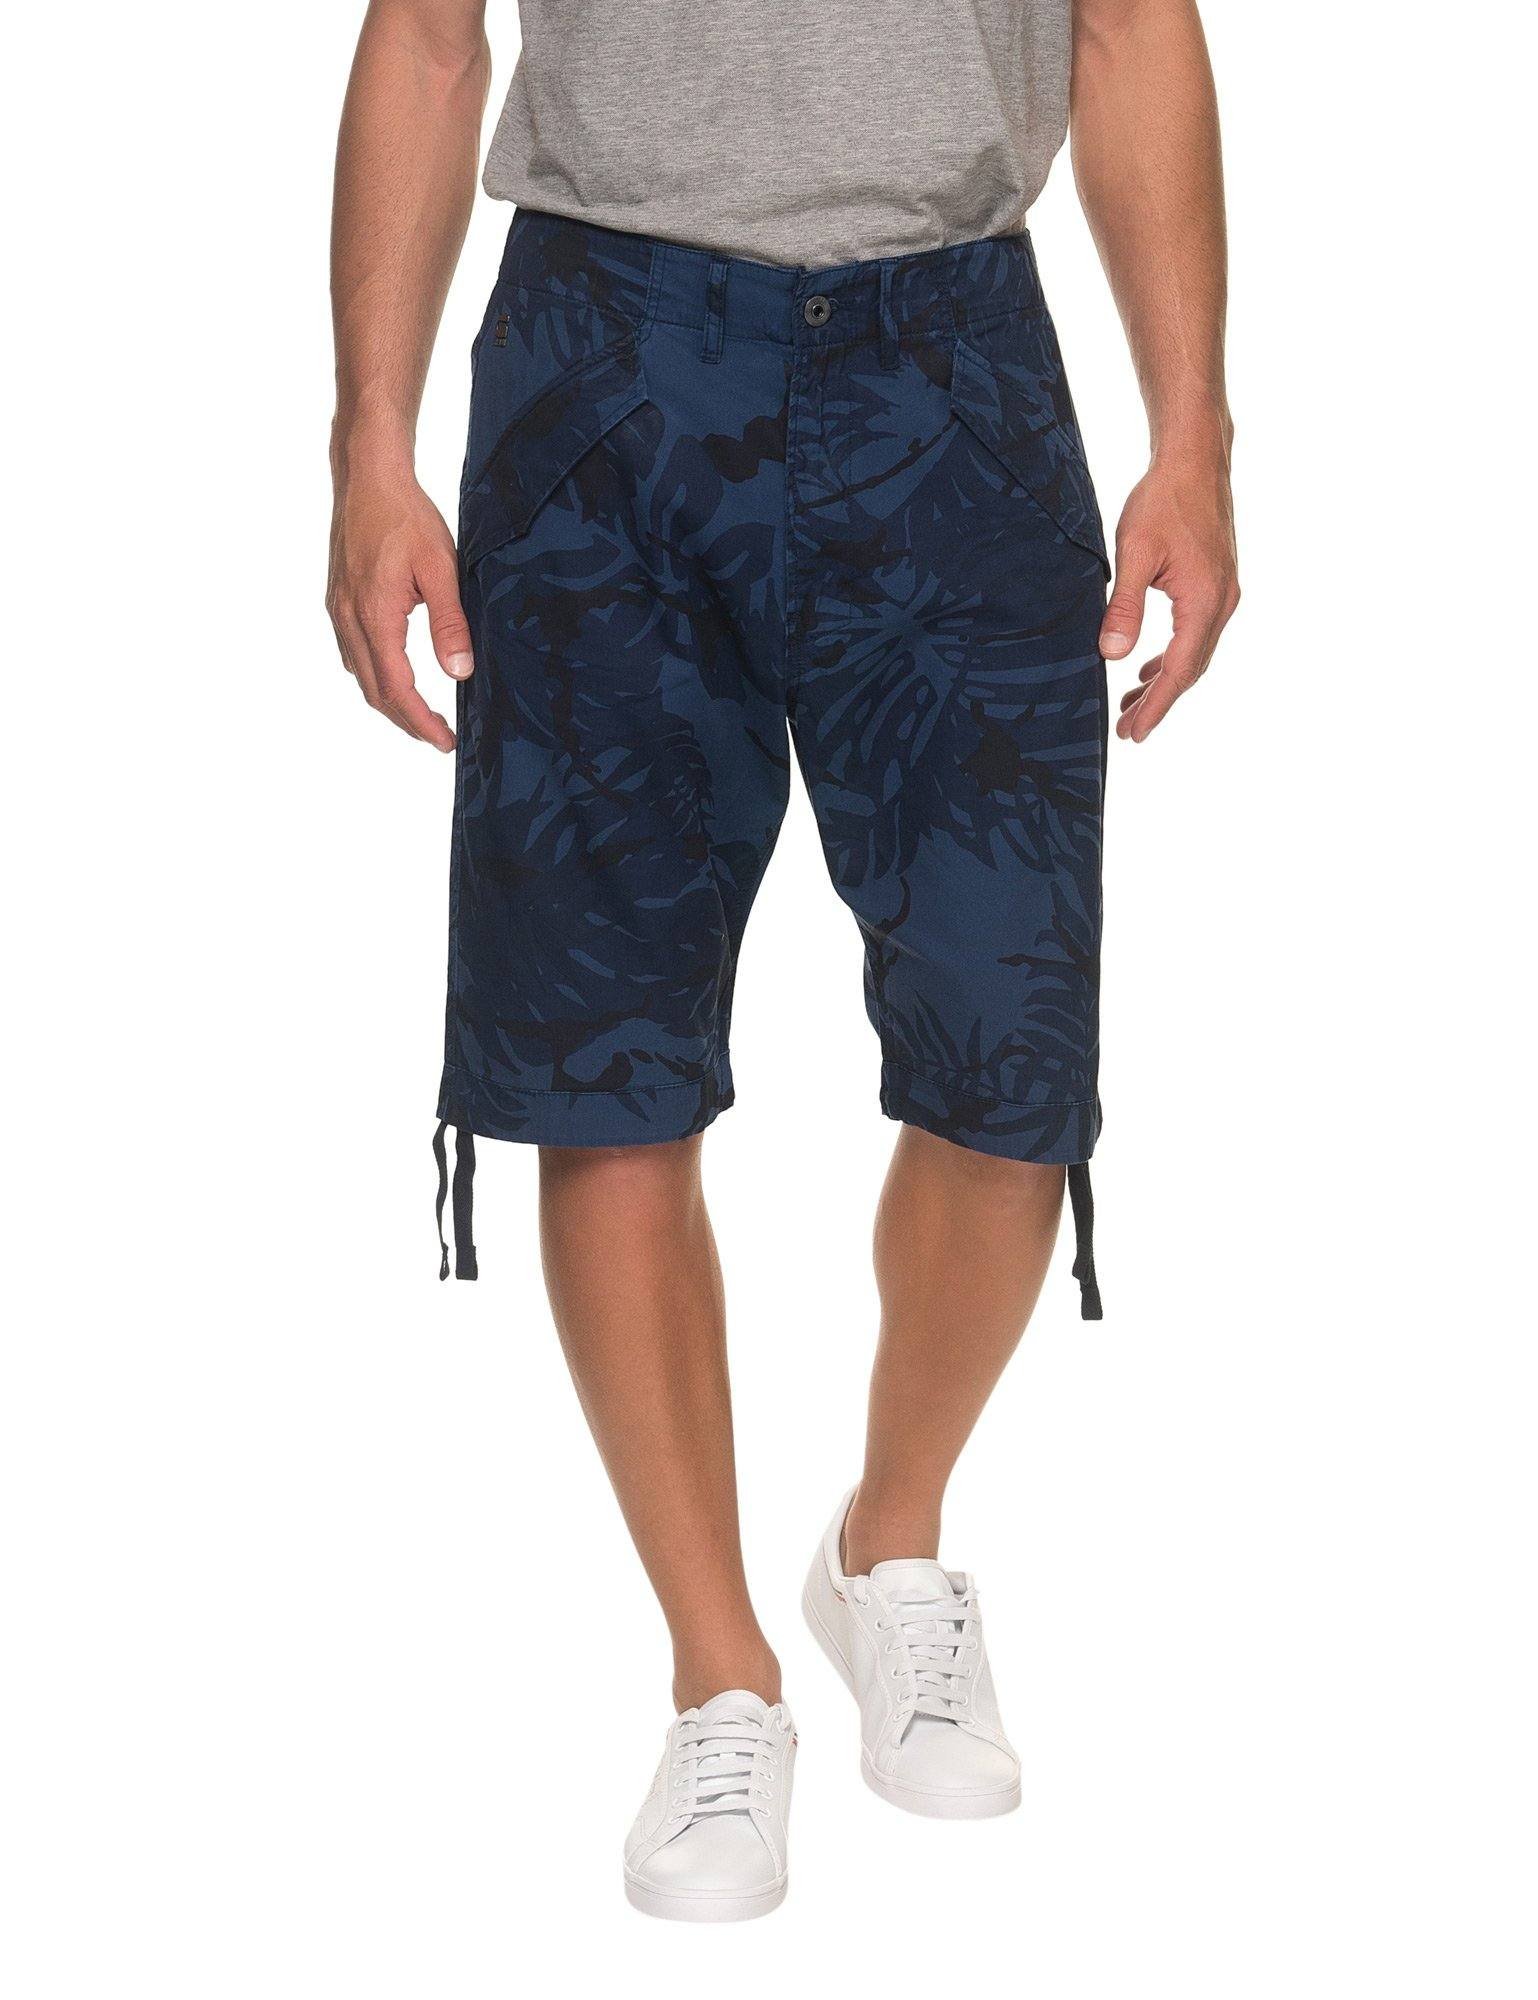 G-Star Men's Rovic Dc Loose Men's Cargo Shorts With Camo Print in Size 31 Blue